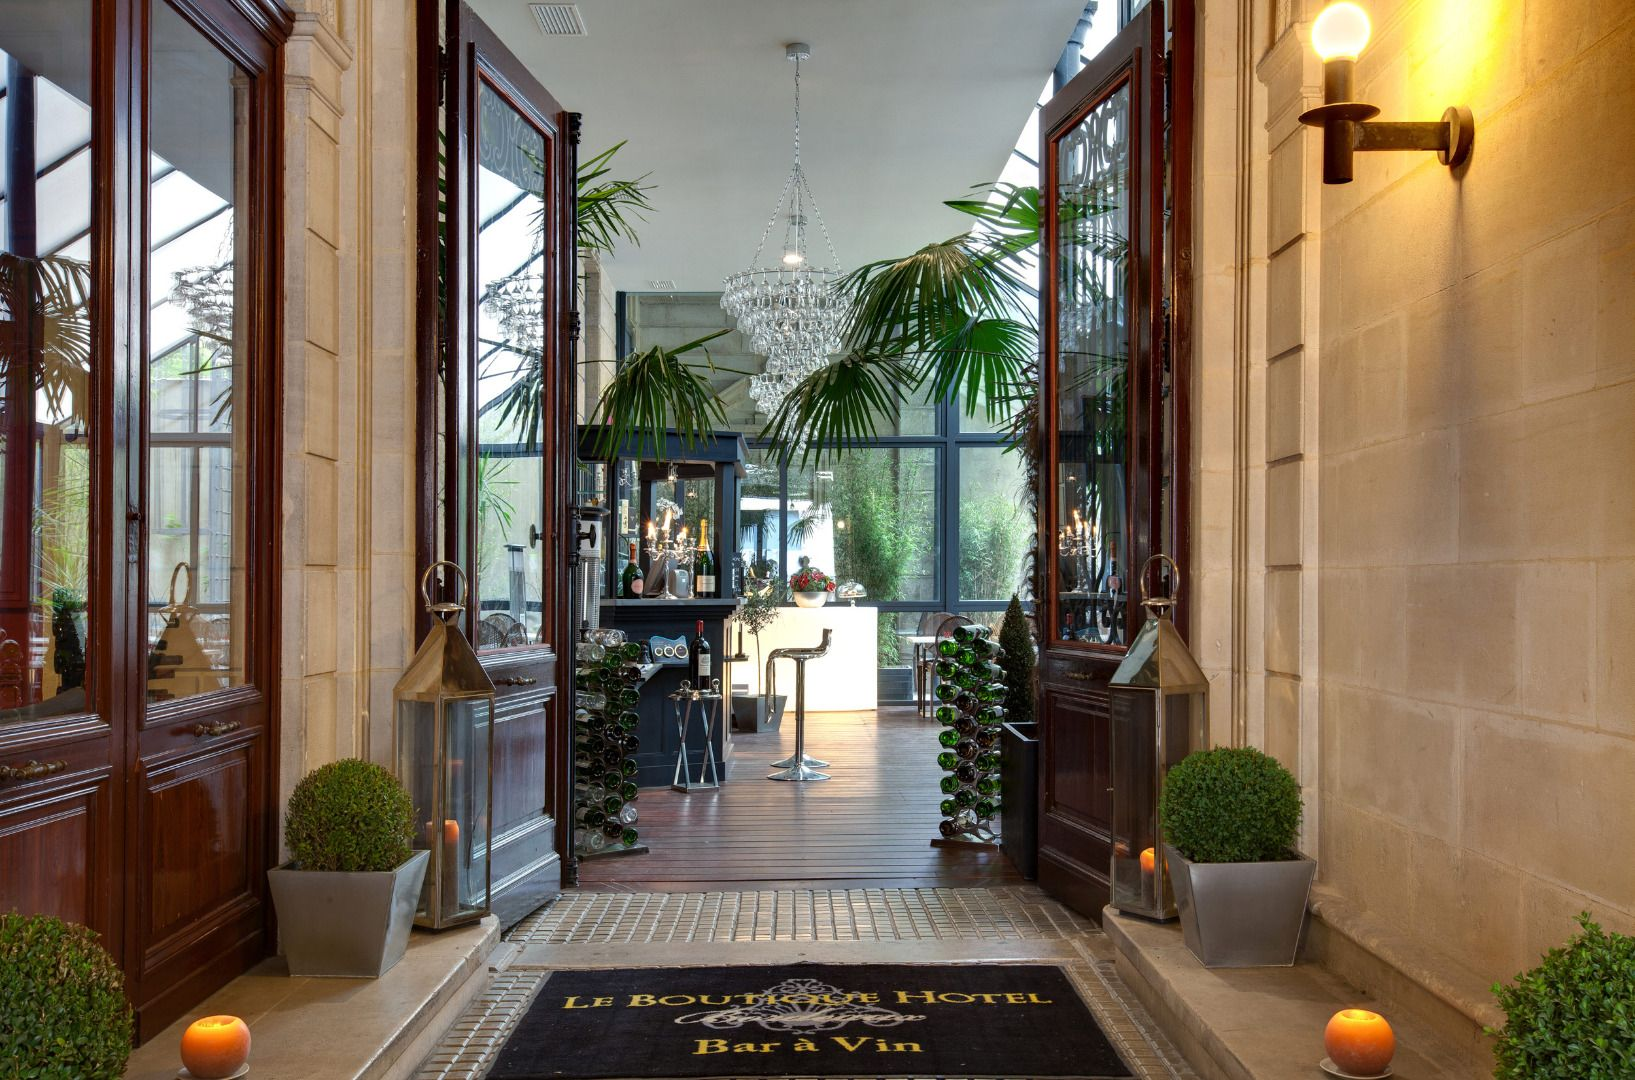 Le-boutique-hotel-bordeaux